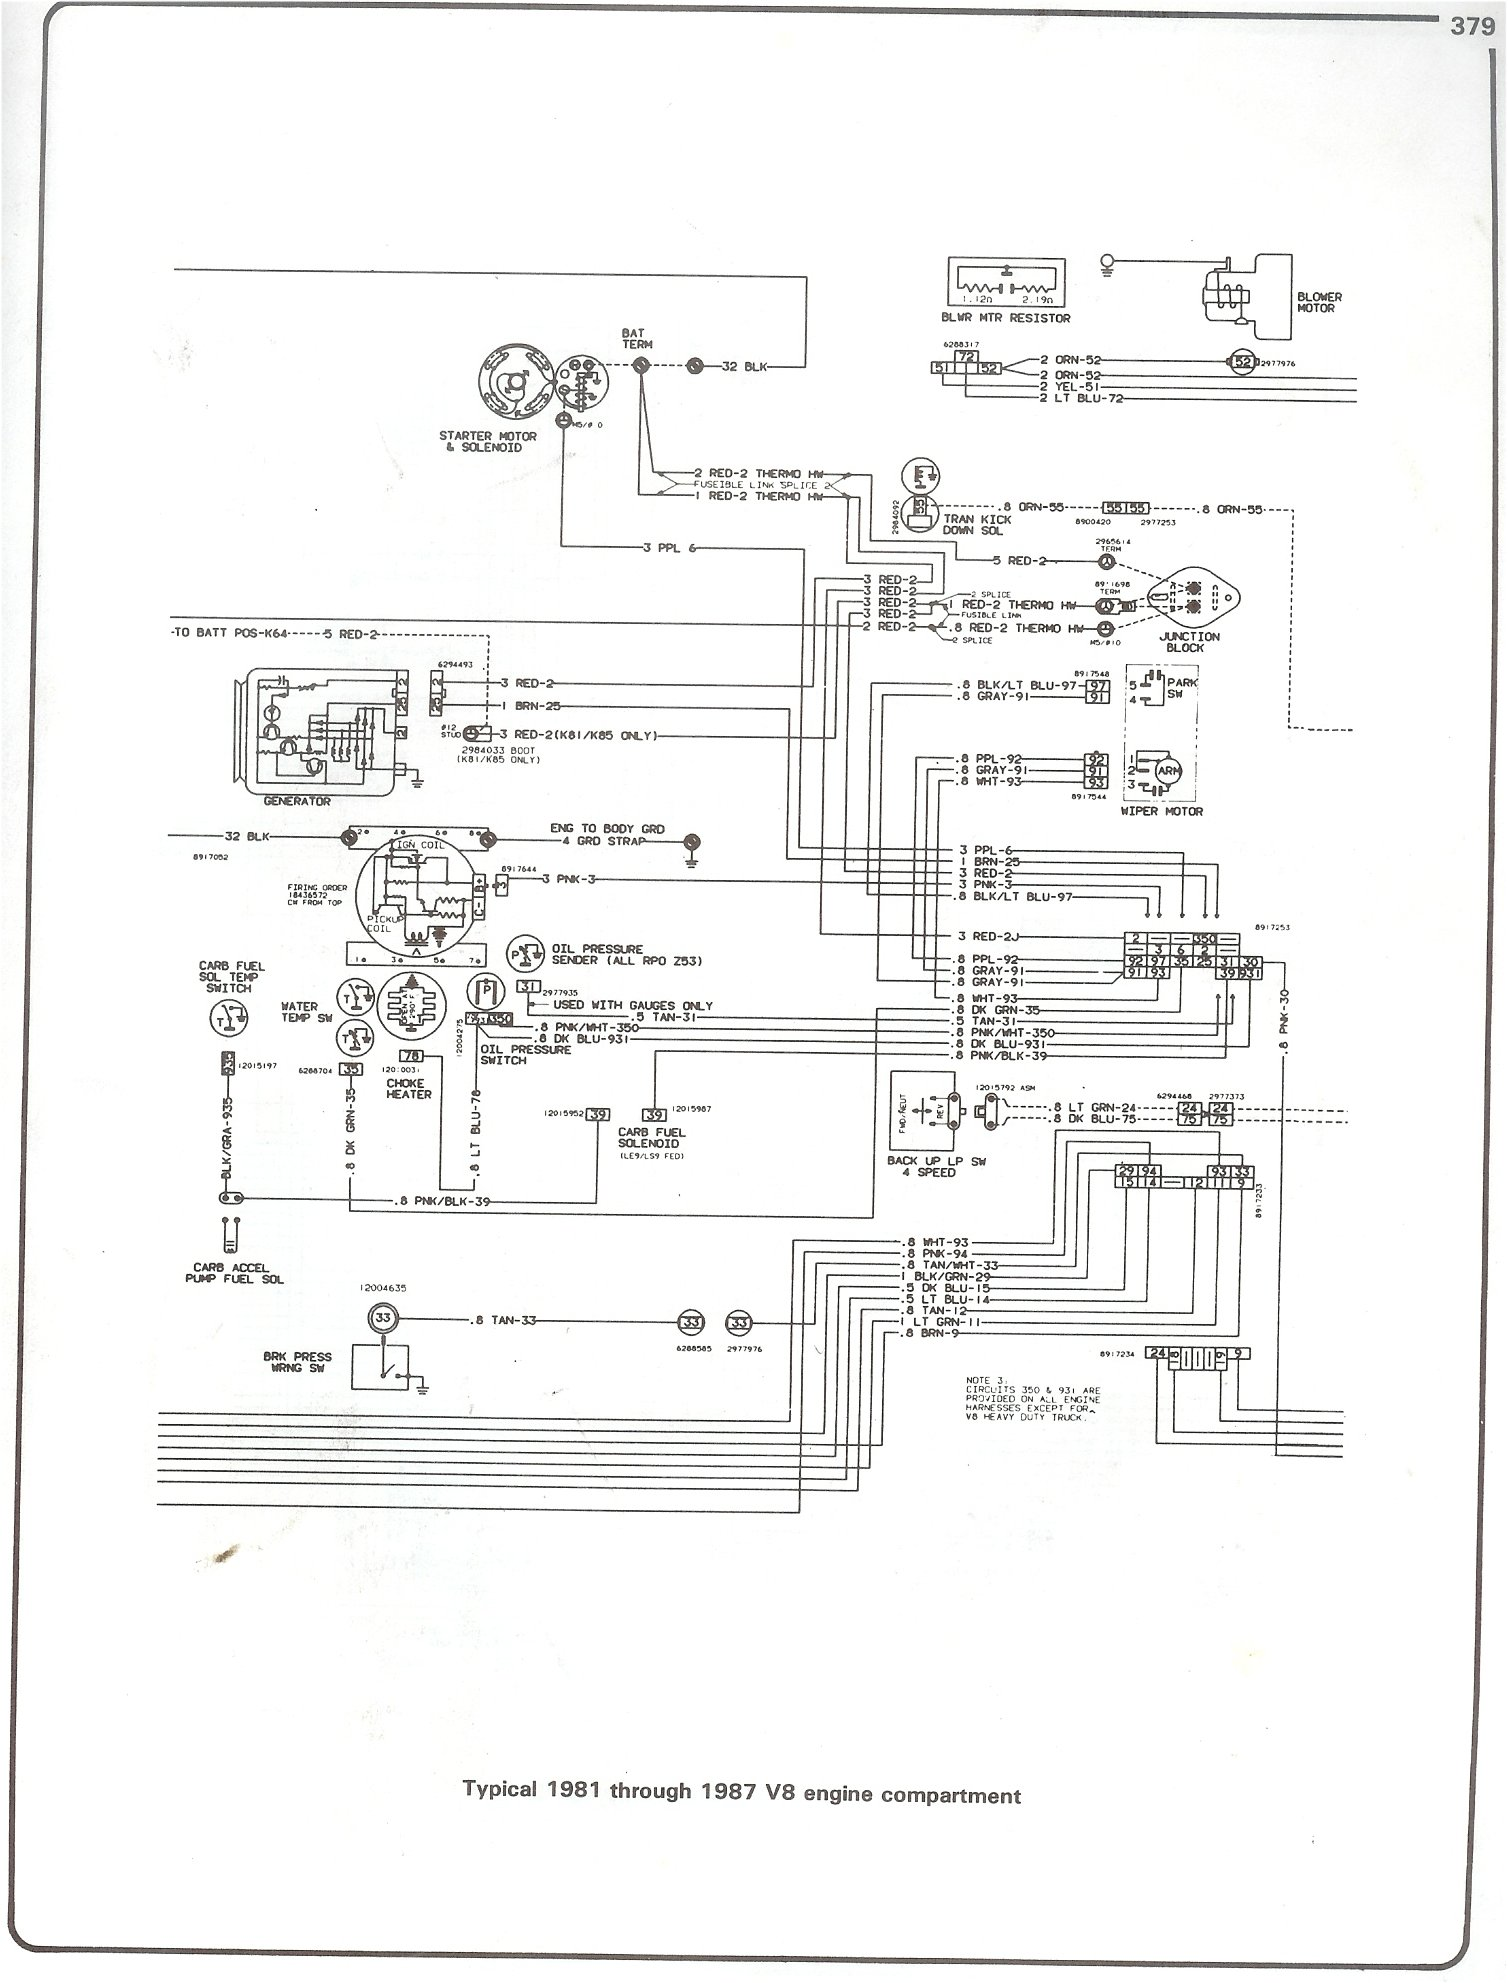 1983 El Camino Wiring Harness Block Diagram Explanation 1968 Complete 73 87 Diagrams 1970